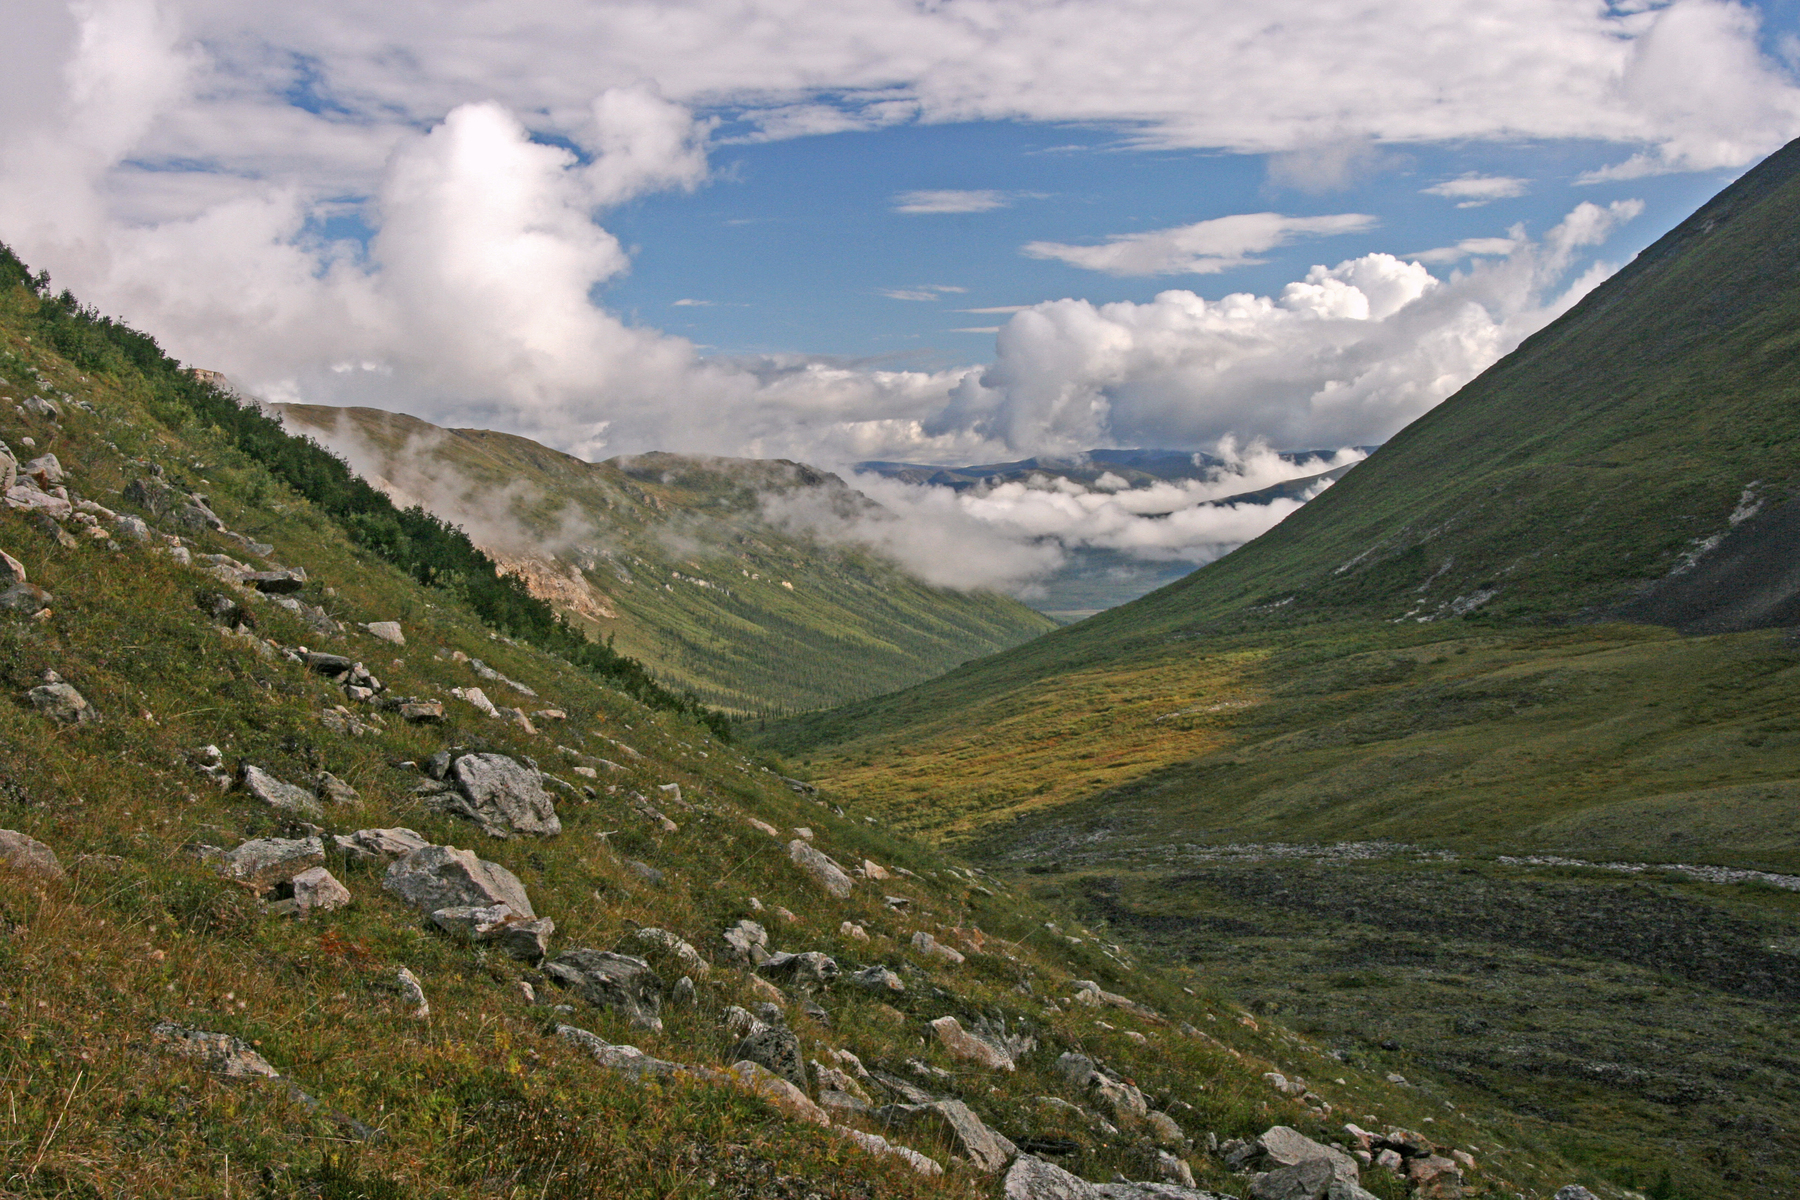 tundra in the Arrigetch Peaks region, Gates of the Arctic National Park, Alaska